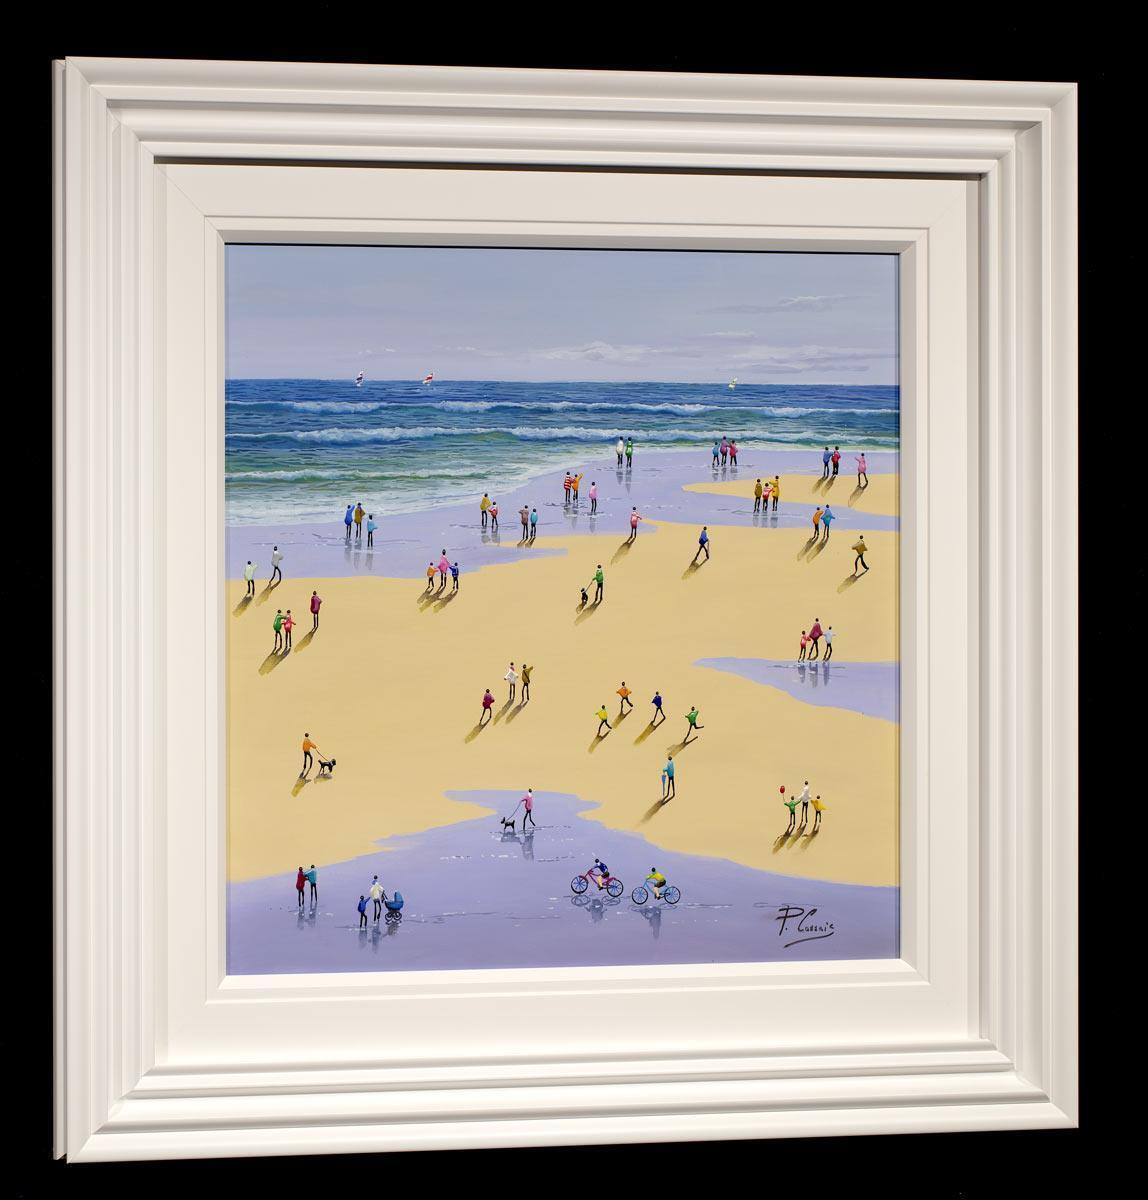 Seaside Memories Paola Cassais Framed